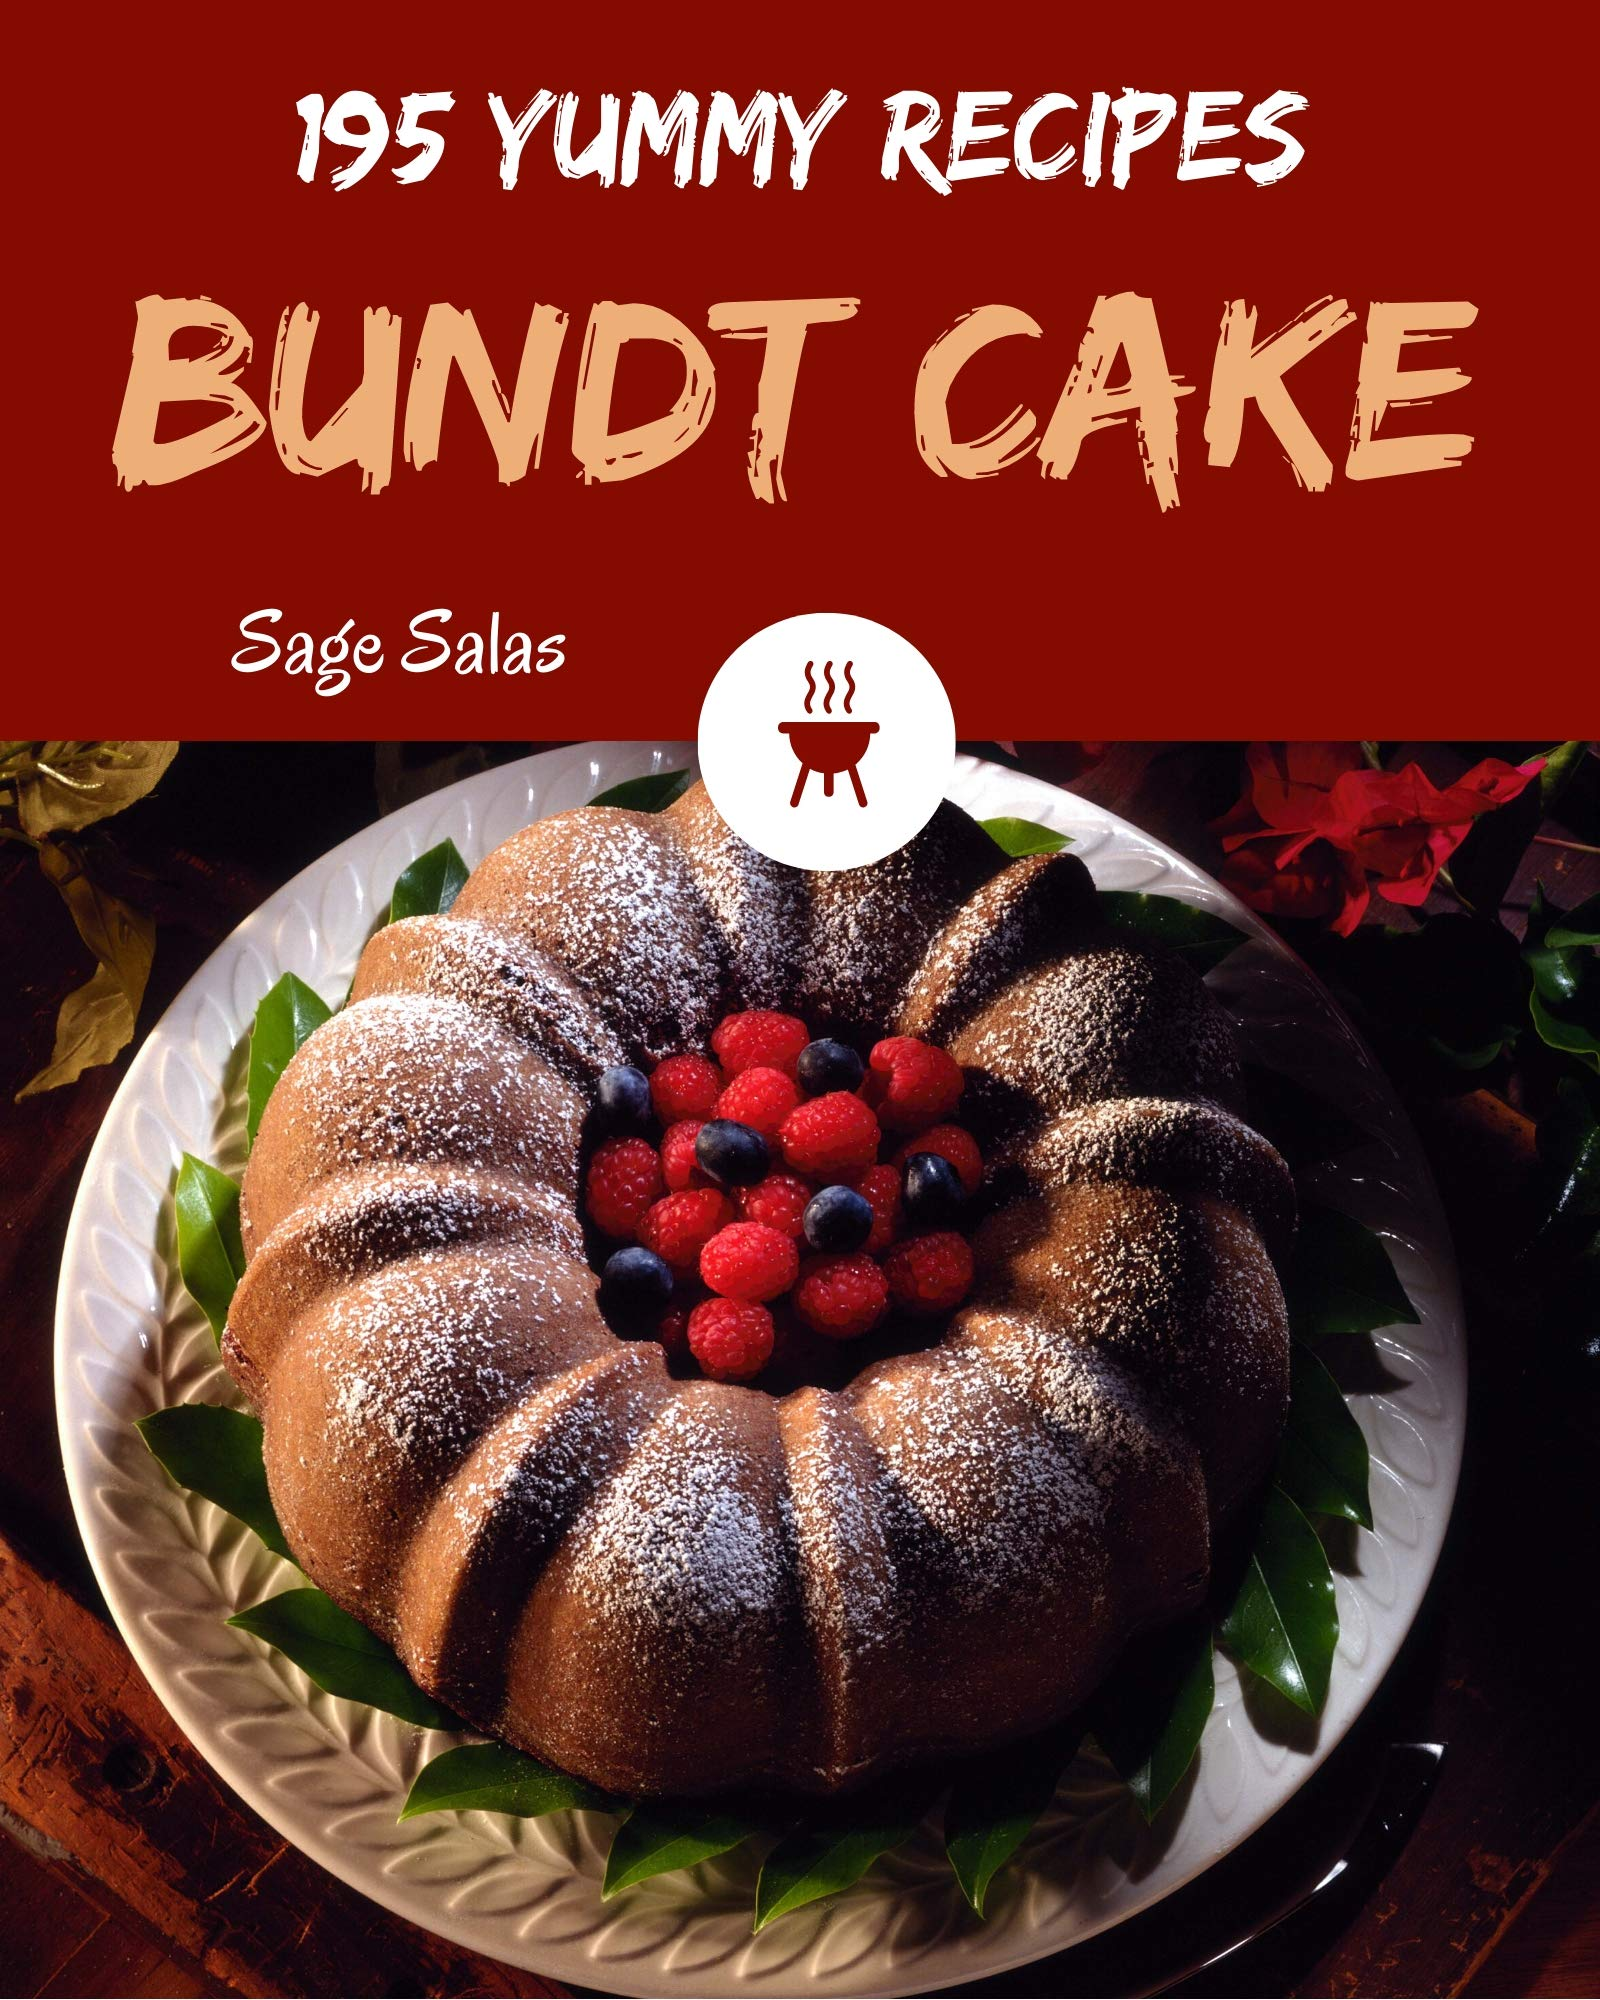 195 Yummy Bundt Cake Recipes: Let's Get Started with The Best Yummy Bundt Cake Cookbook!